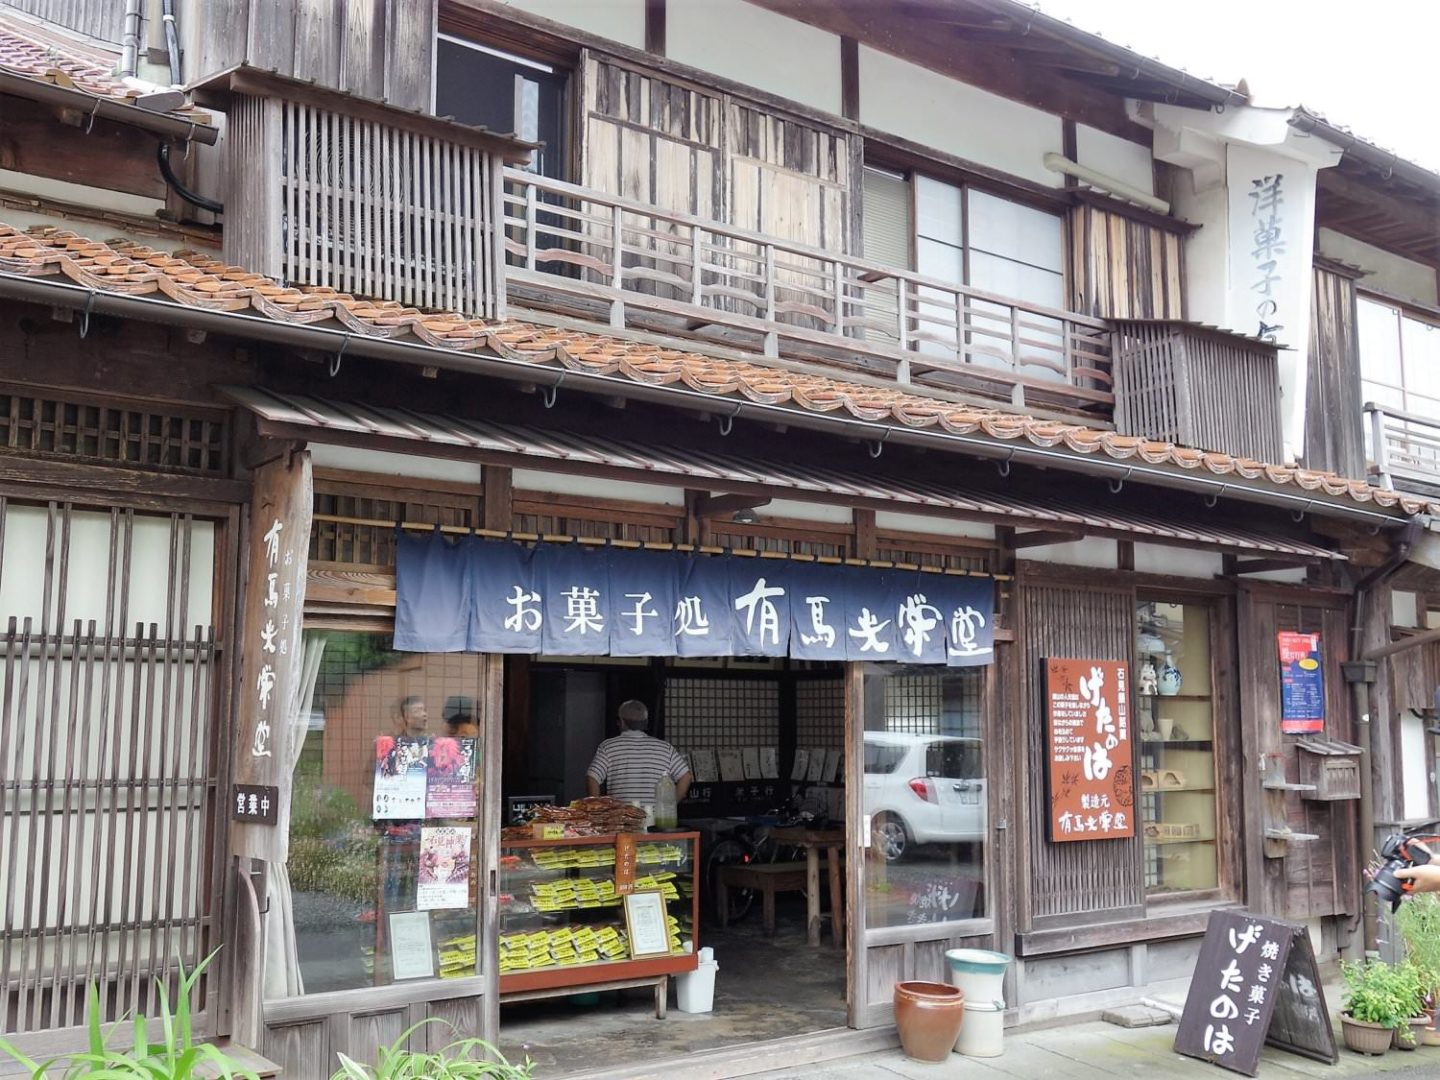 Arima Koeido sweets shop